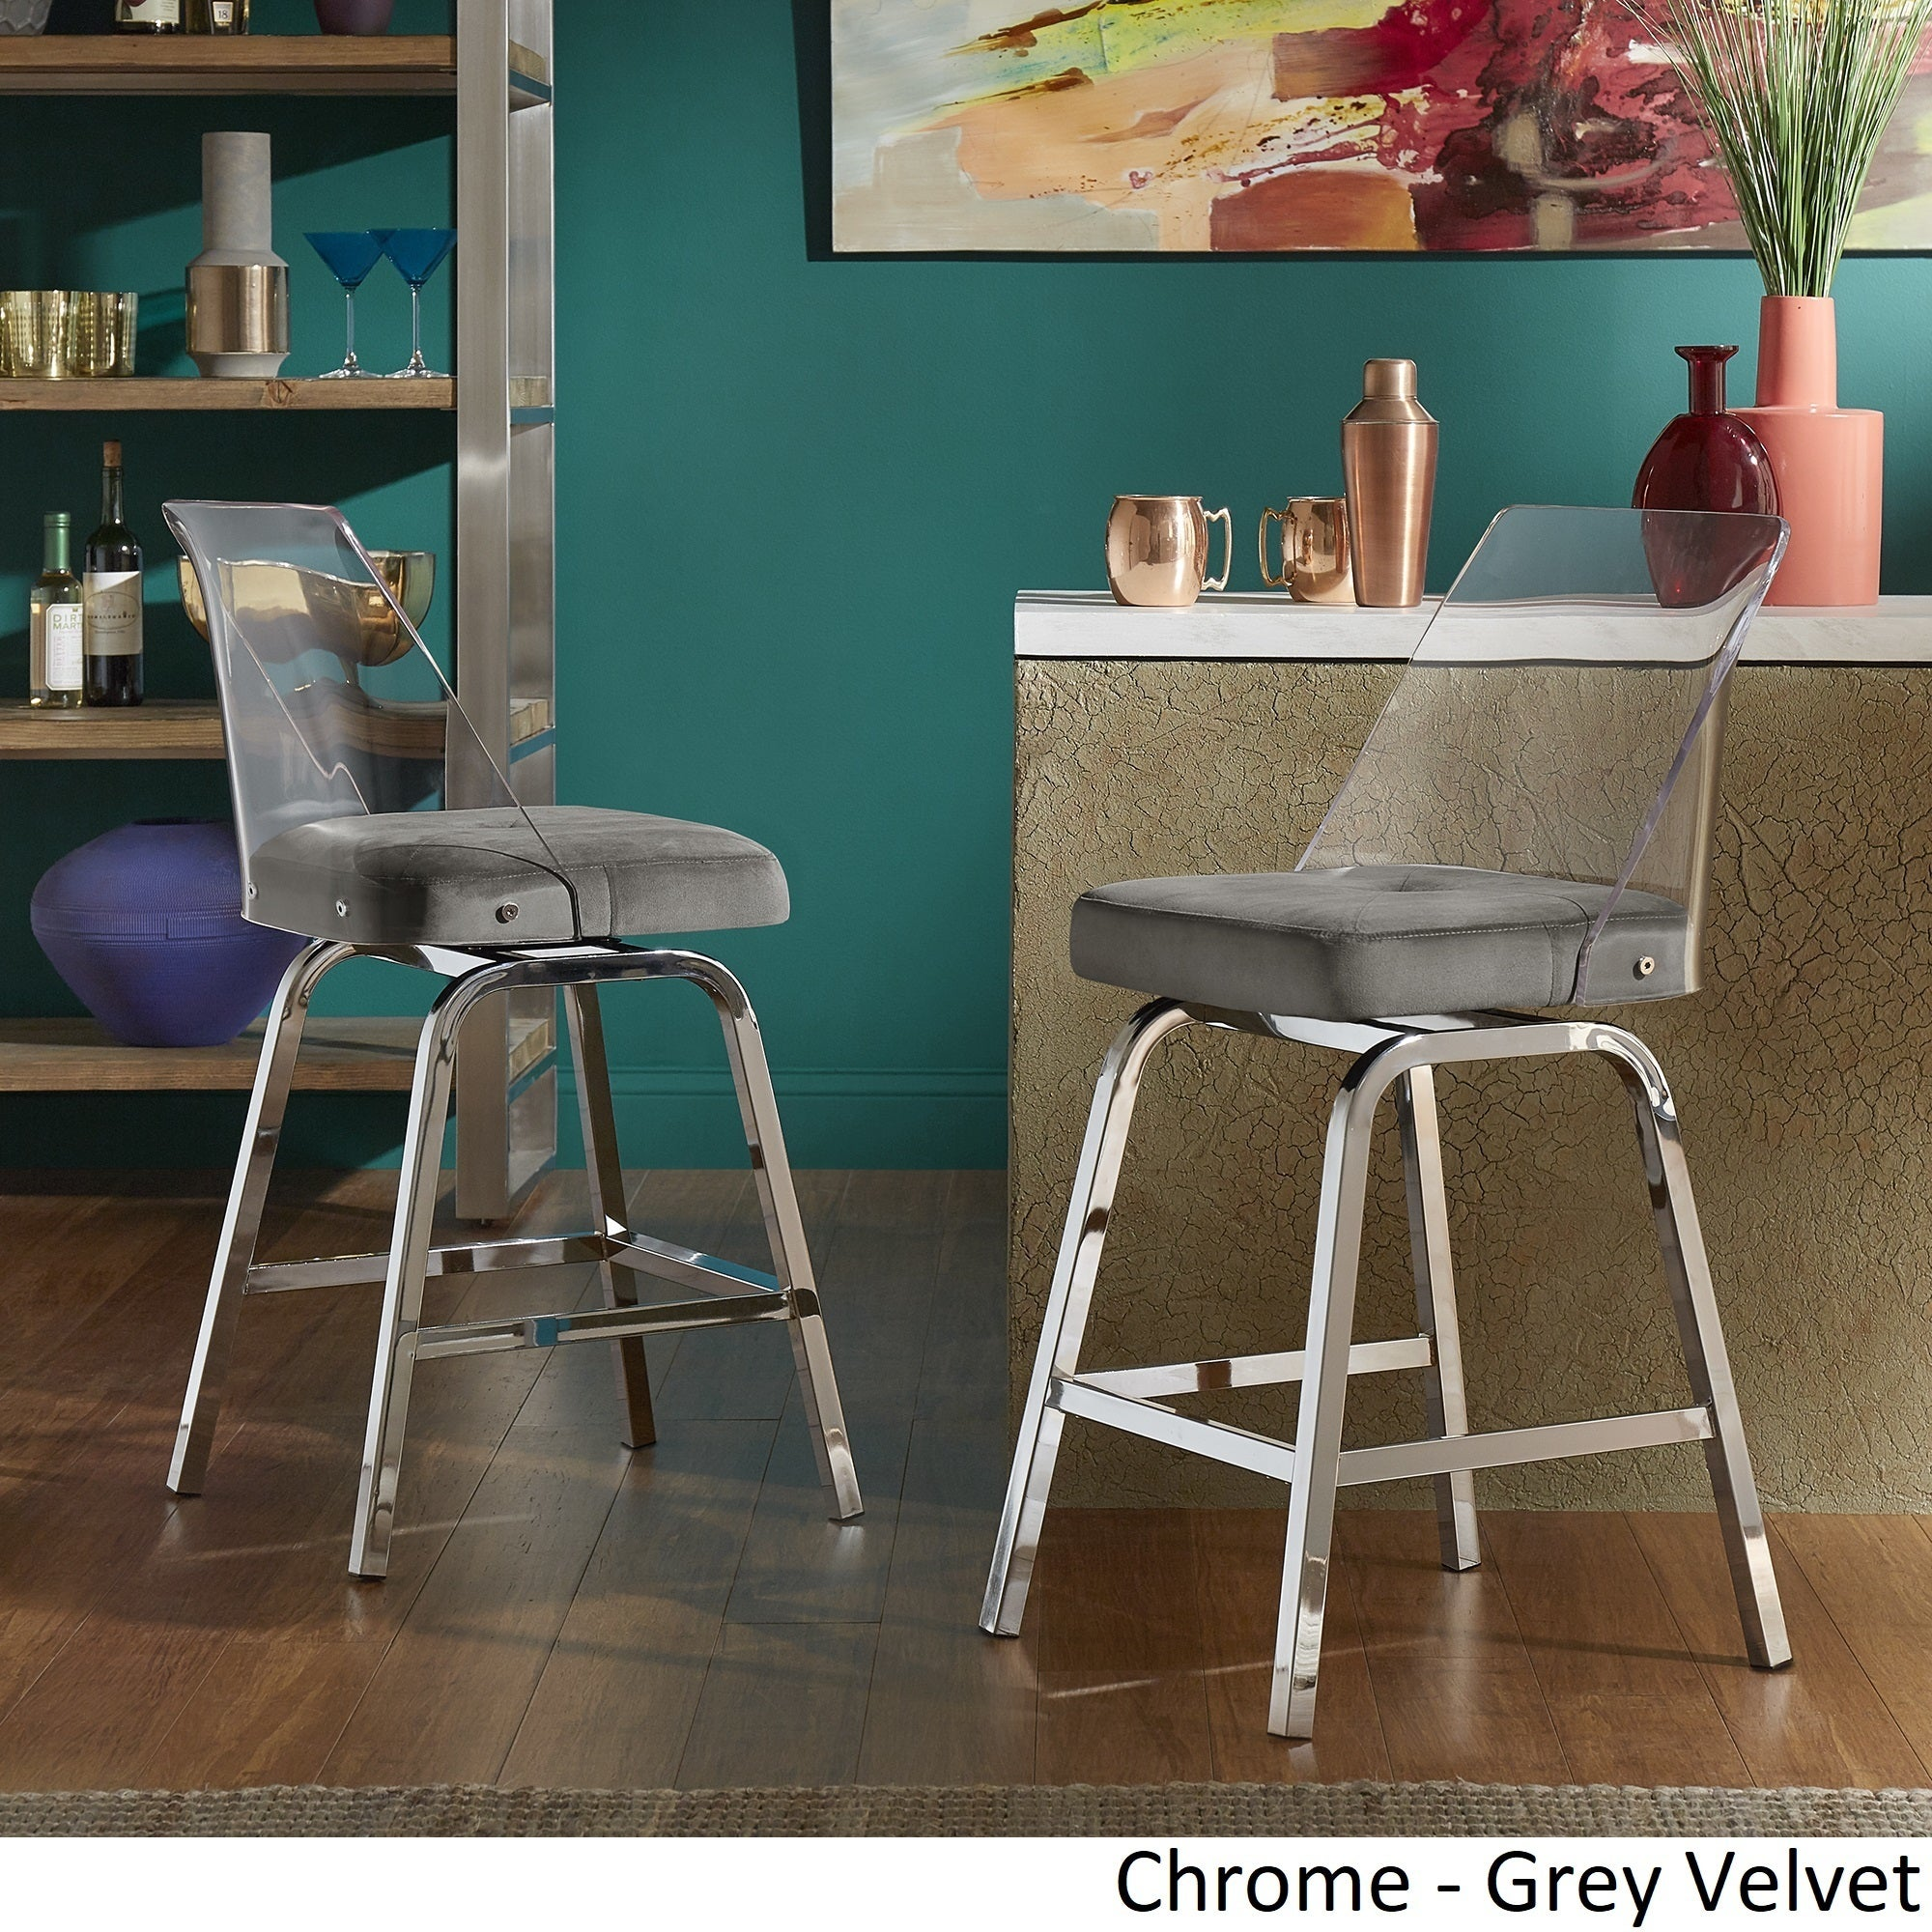 for with swivel where shopping armchair kitchen full padded stools barstool size height backs counter high online metal of shop bar buy chair black backless to stool